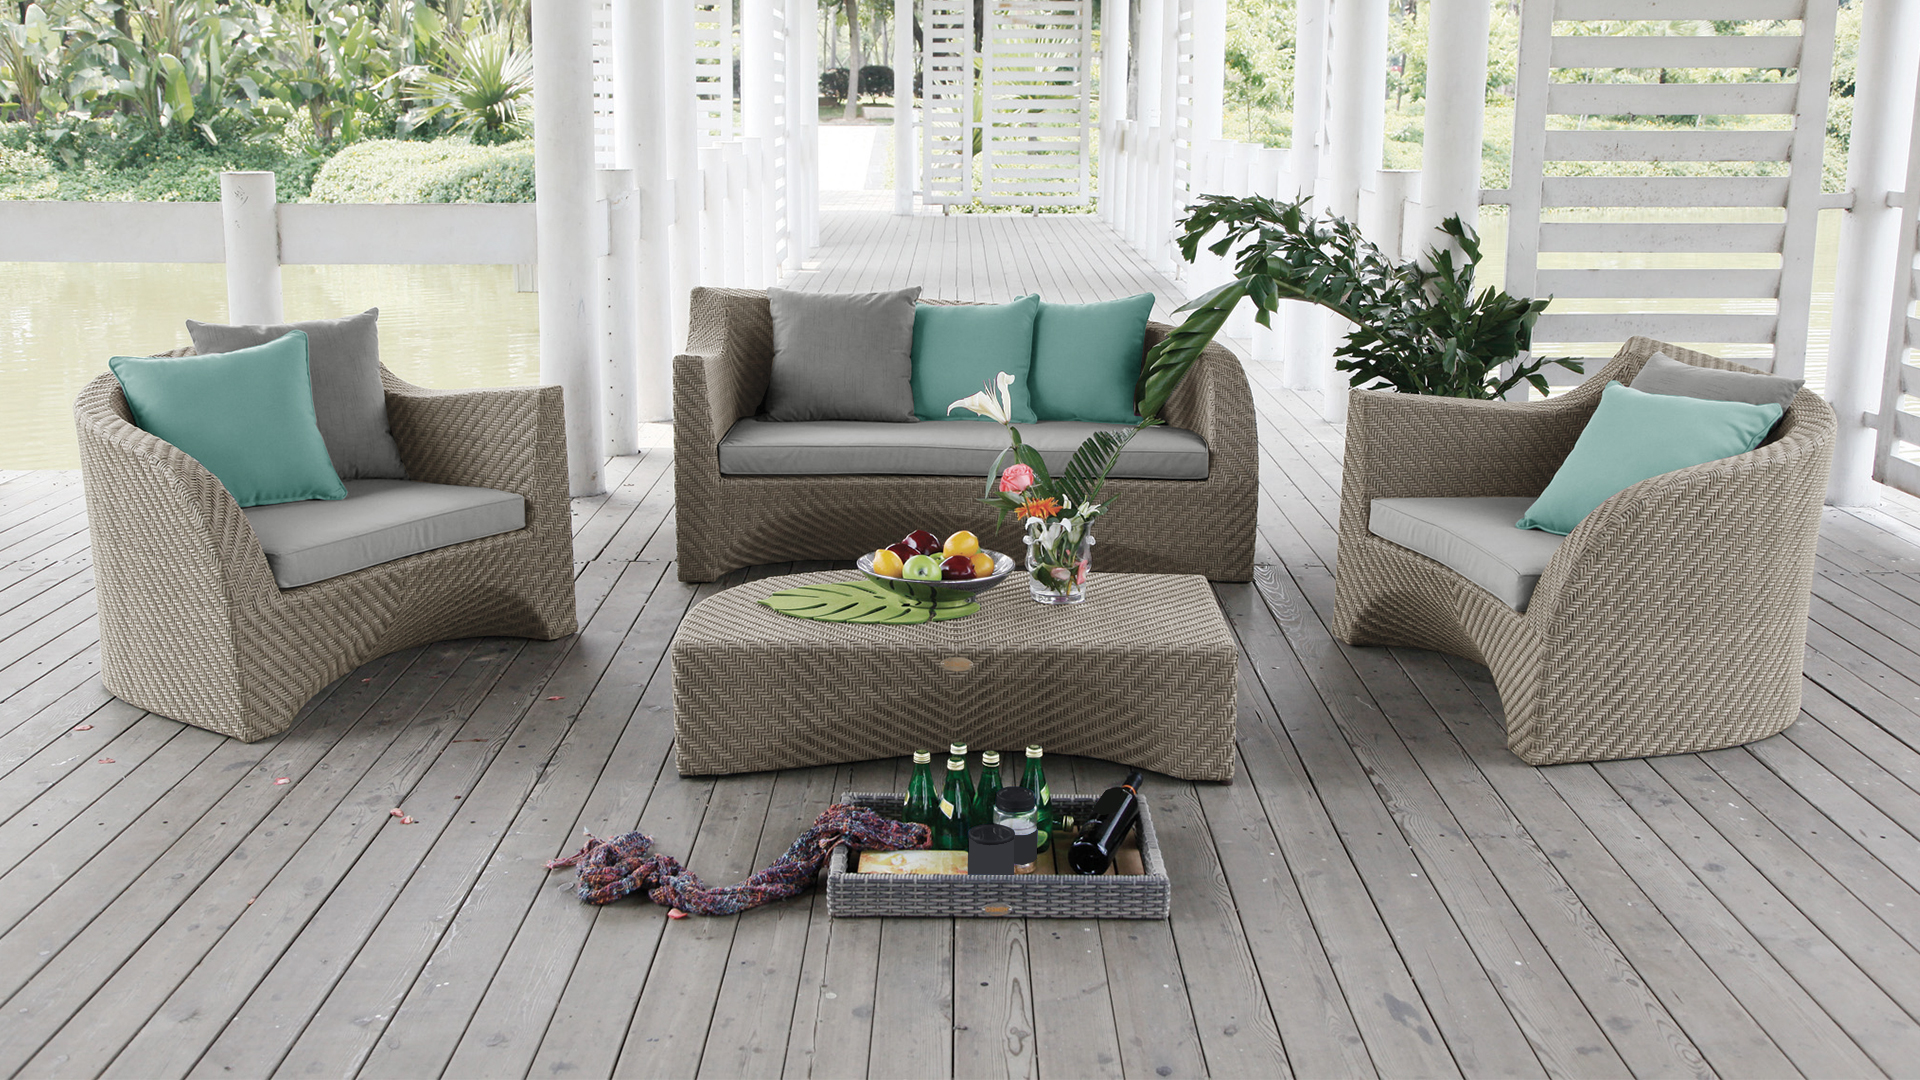 Le blog mobiliermoss c est le printemps le bon moment - Salon de jardin le bon coin ...